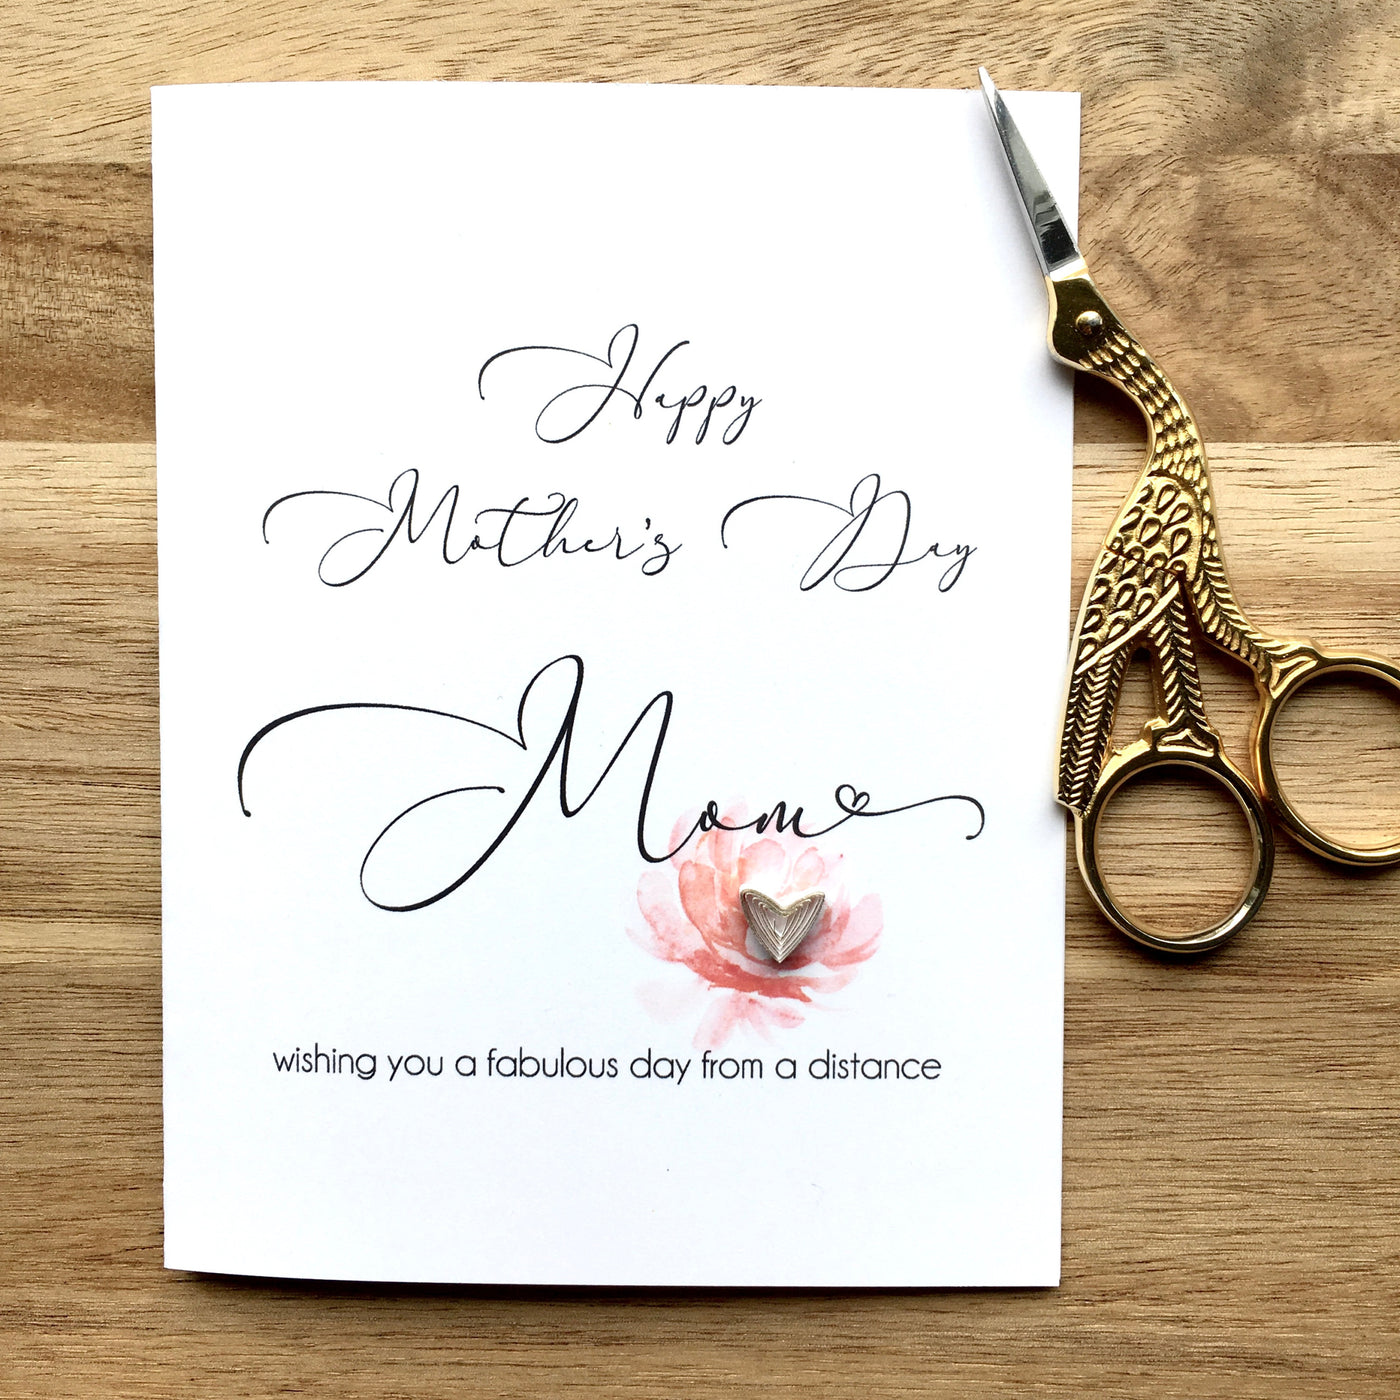 Happy Mother's Day From a Distance Card